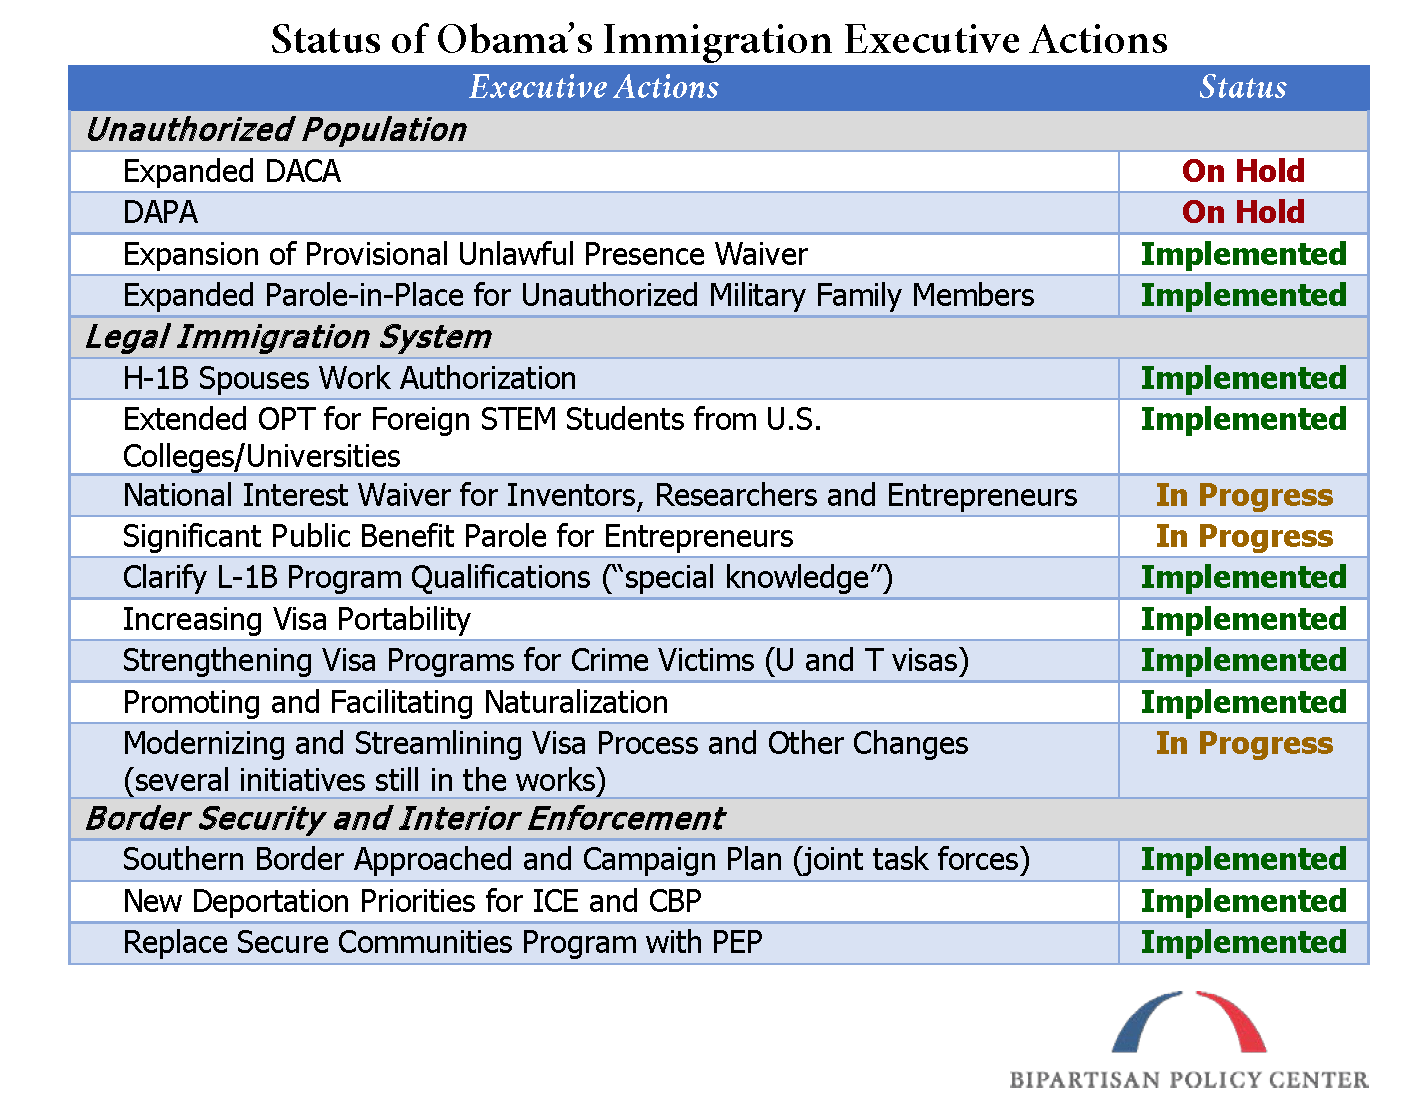 summary-table-exec-actions-two-years-later